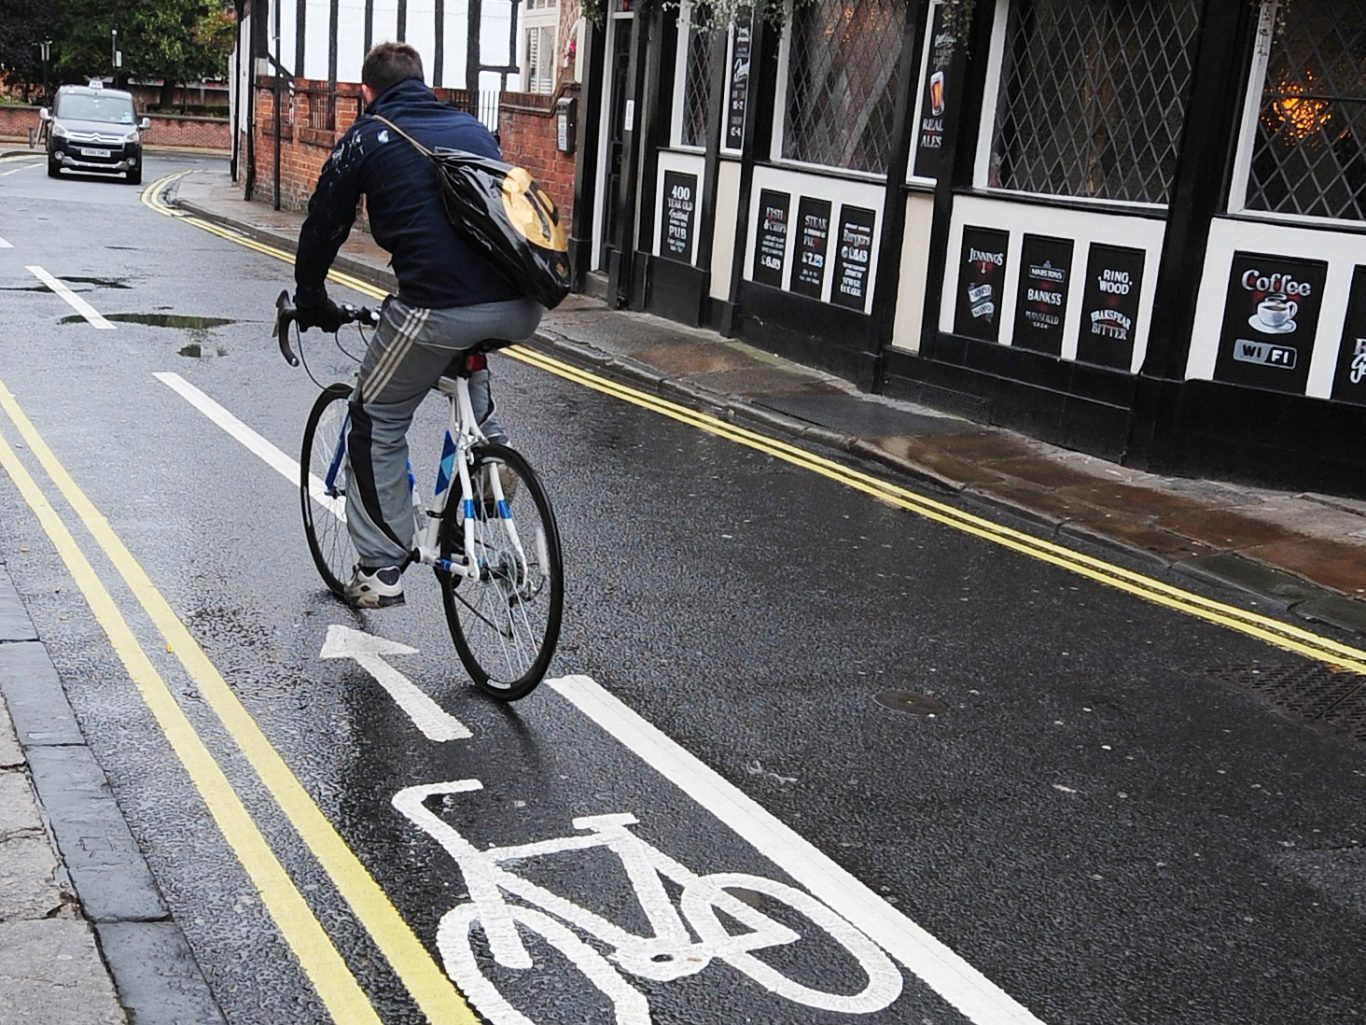 32 pedestrians died and 820 suffered serious injuries after colliding with cyclists from 2005 to 2015 (Anna Gowthorpe/PA)